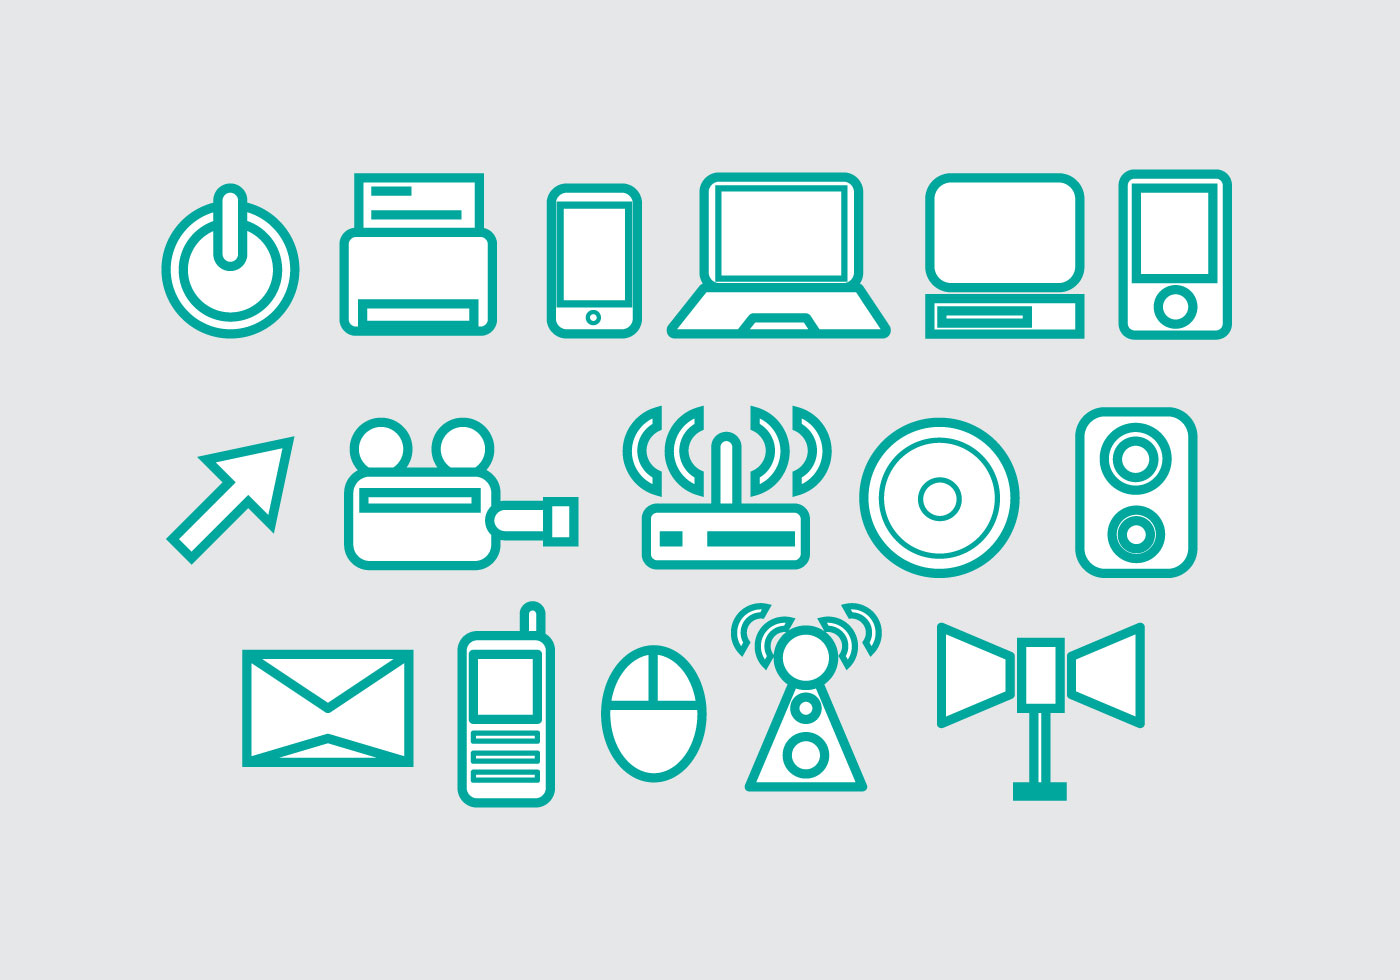 Free Technology Vector Icon #2 - Download Free Vector Art ...